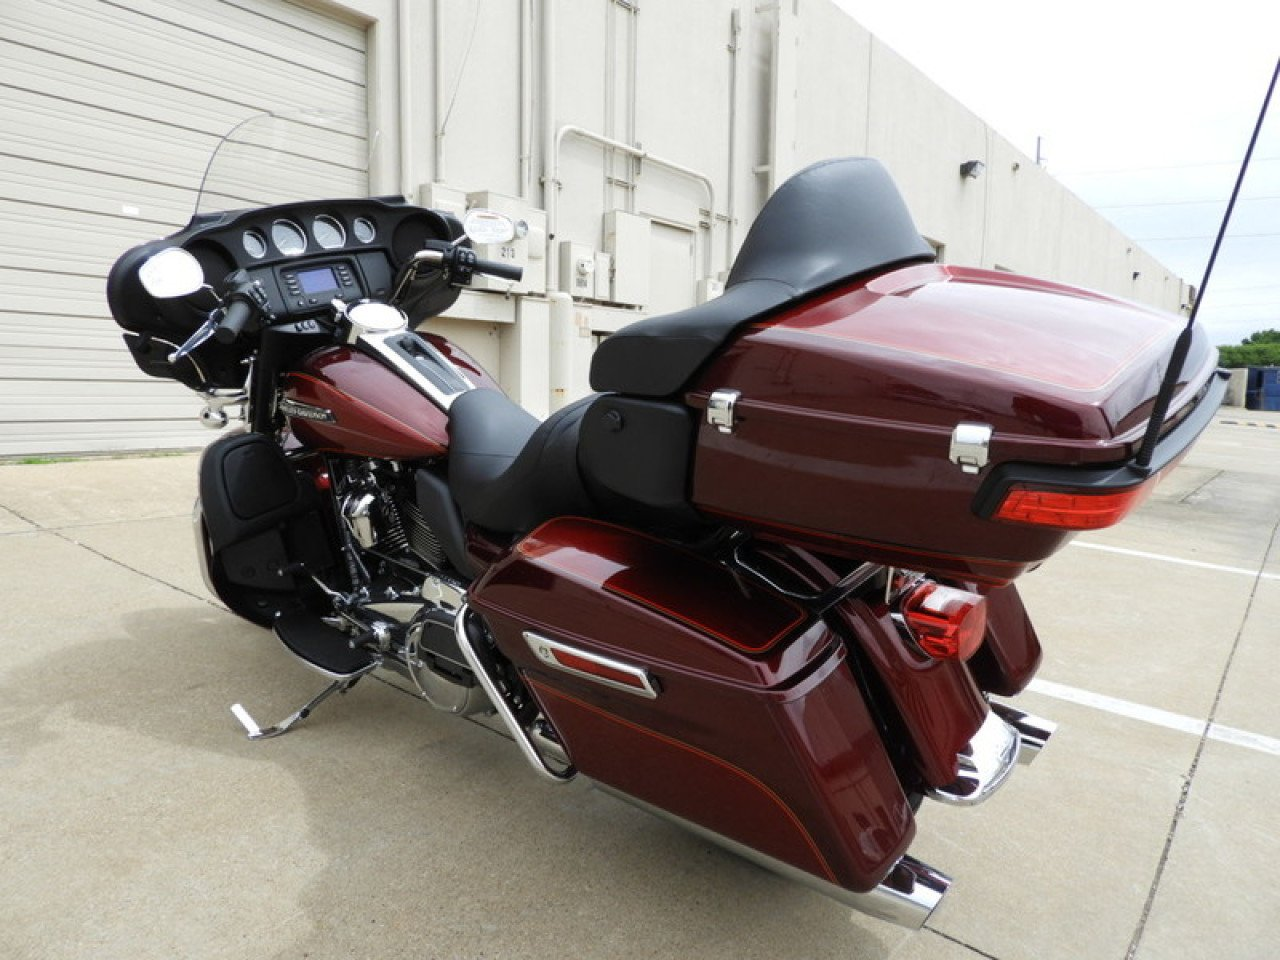 Harley Davidson Touring Motorcycles For Sale Dallas Tx >> 2017 Harley-Davidson Touring Electra Glide Ultra Classic for sale near Garland, Texas 75041 ...